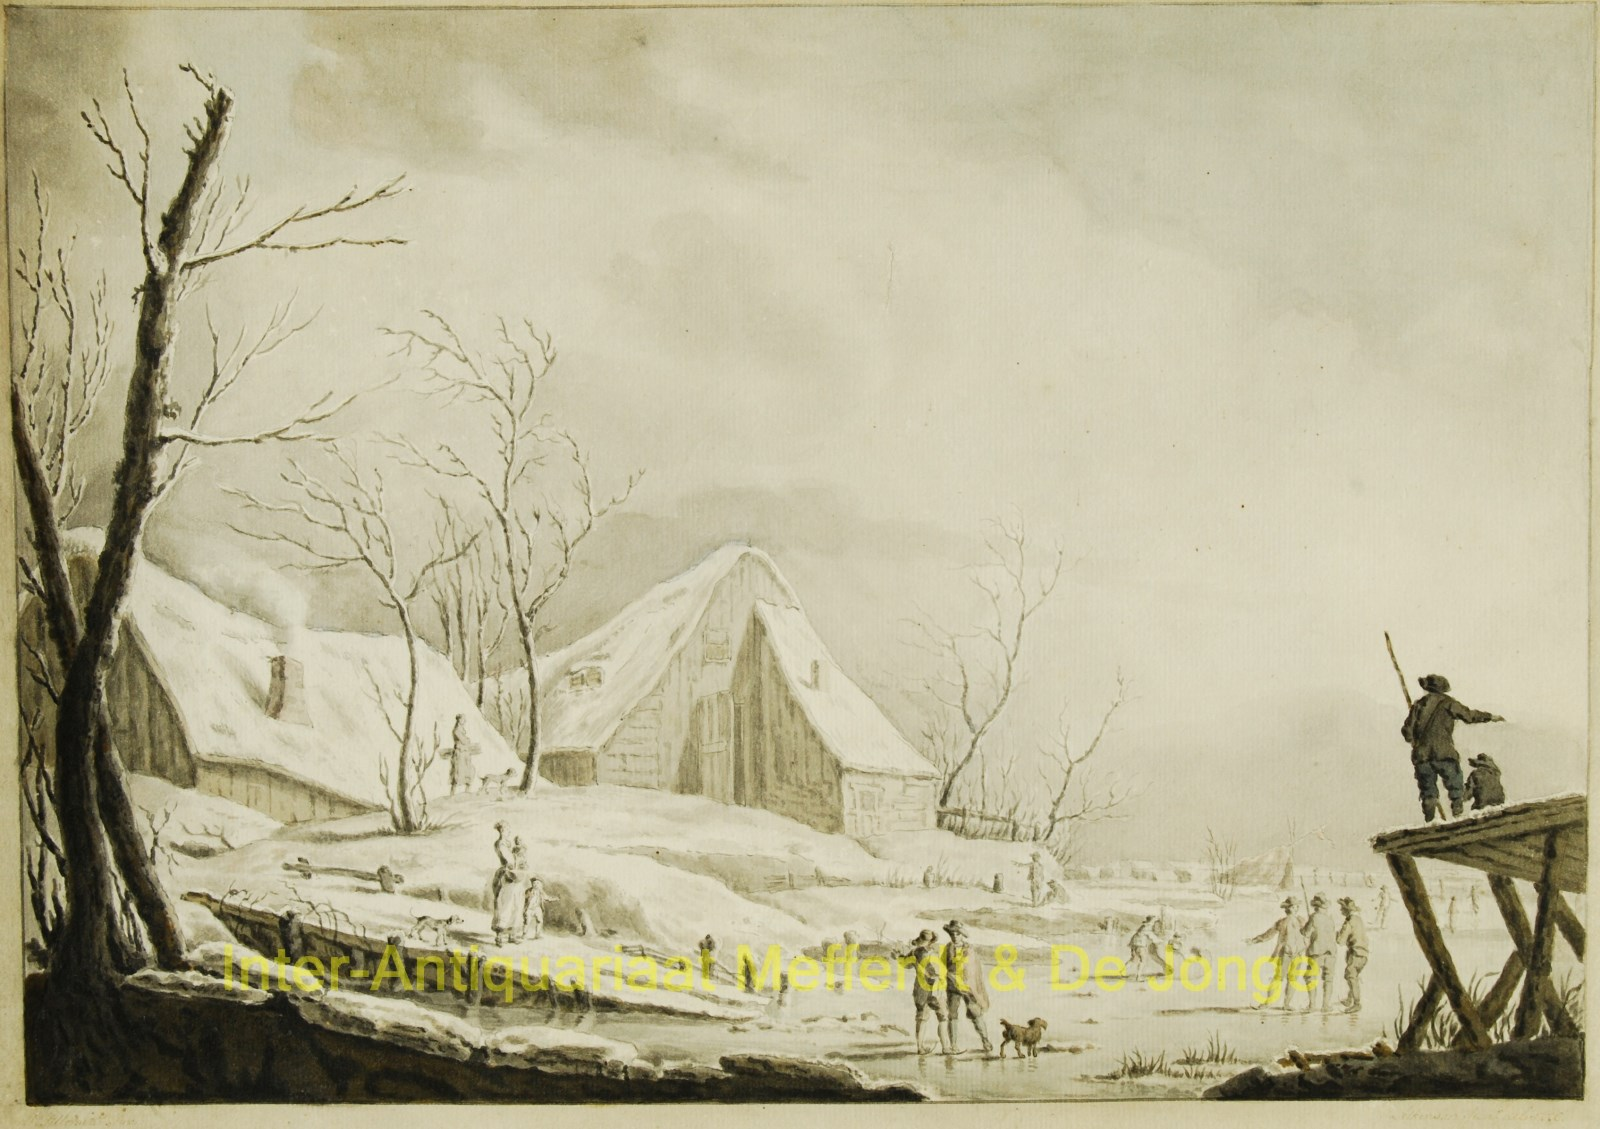 Atkinson after Jean-Baptiste Pillement - Winter scene